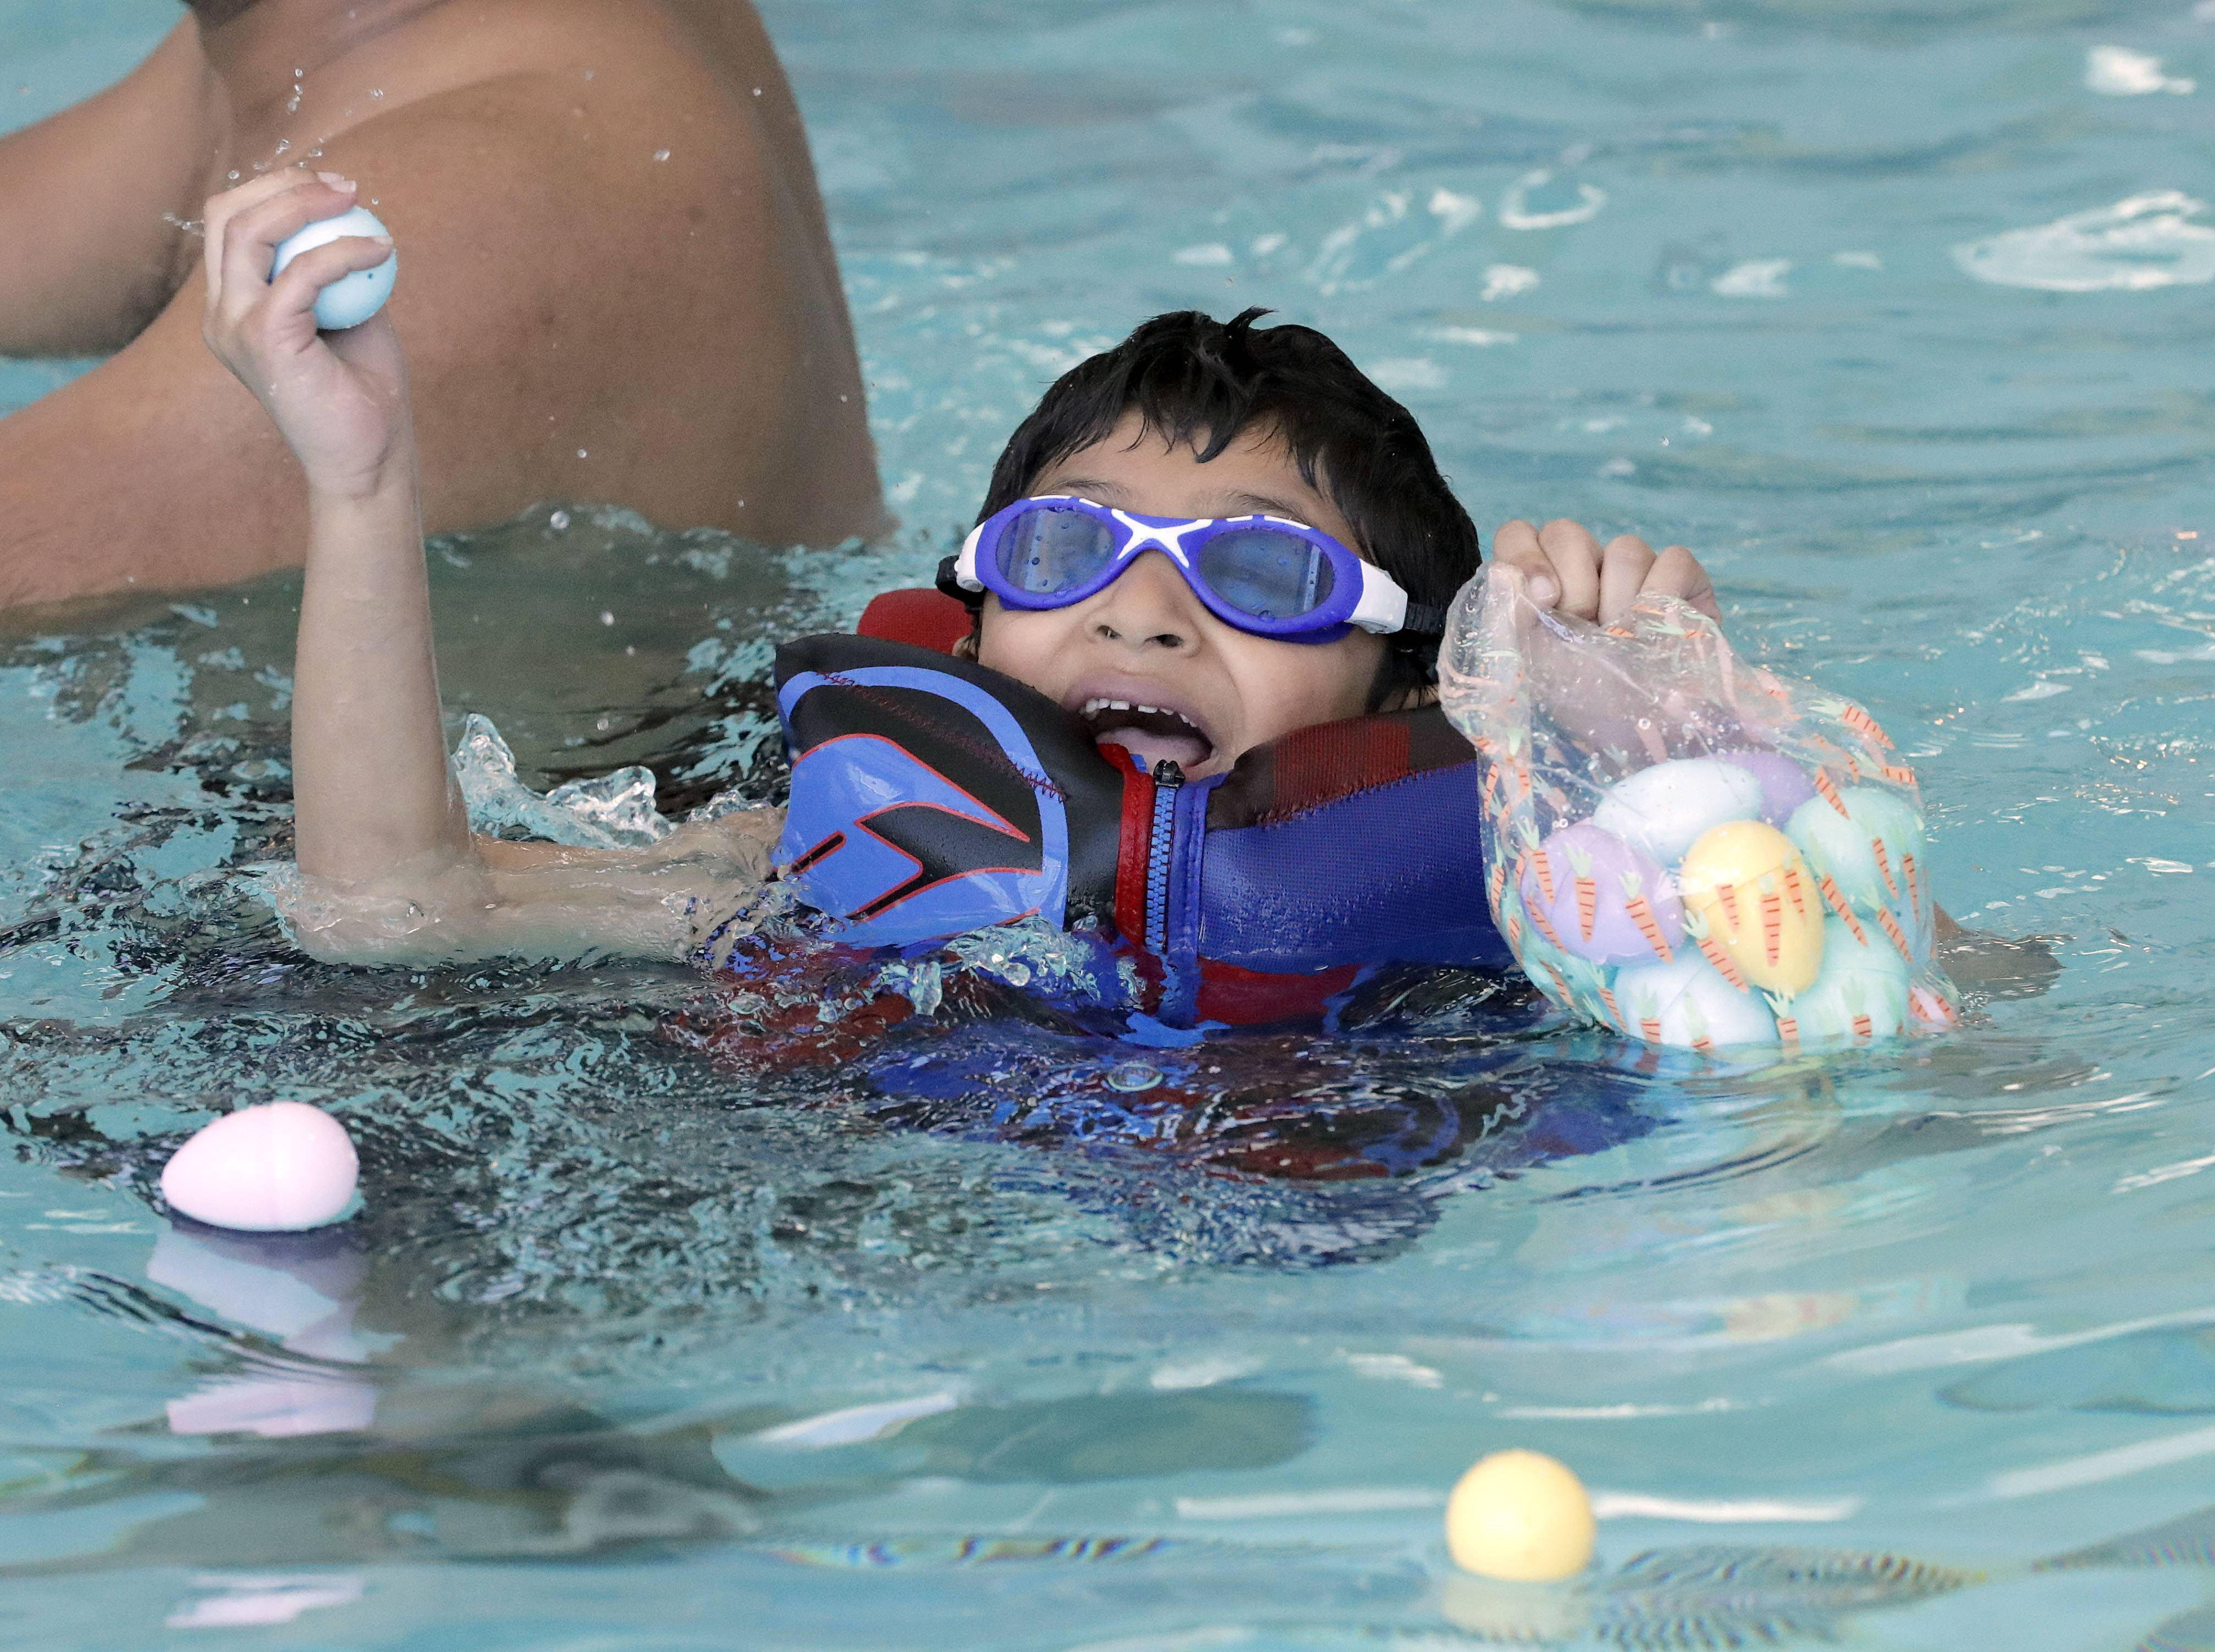 Swimsuits and goggles part of Easter egg hunt in Hoffman Estates